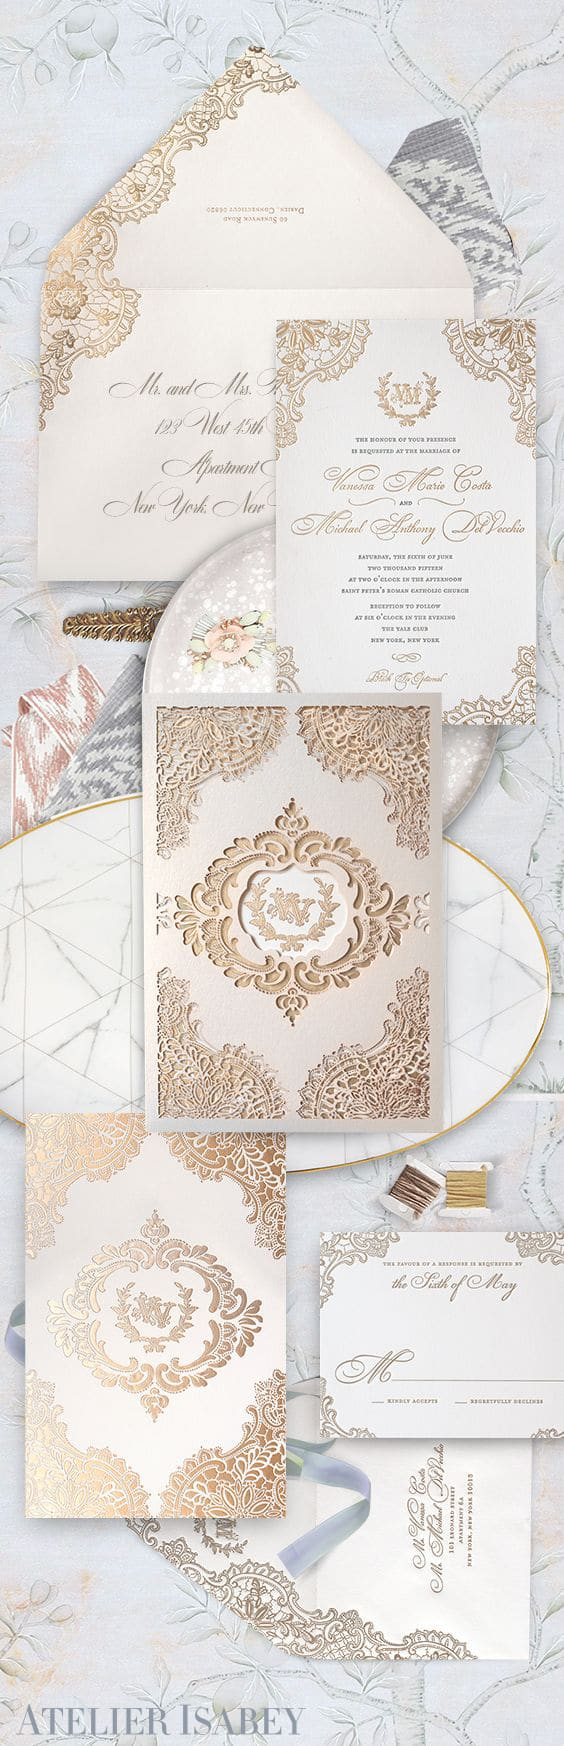 Gold lace wedding invitation with a laser cut sleeve